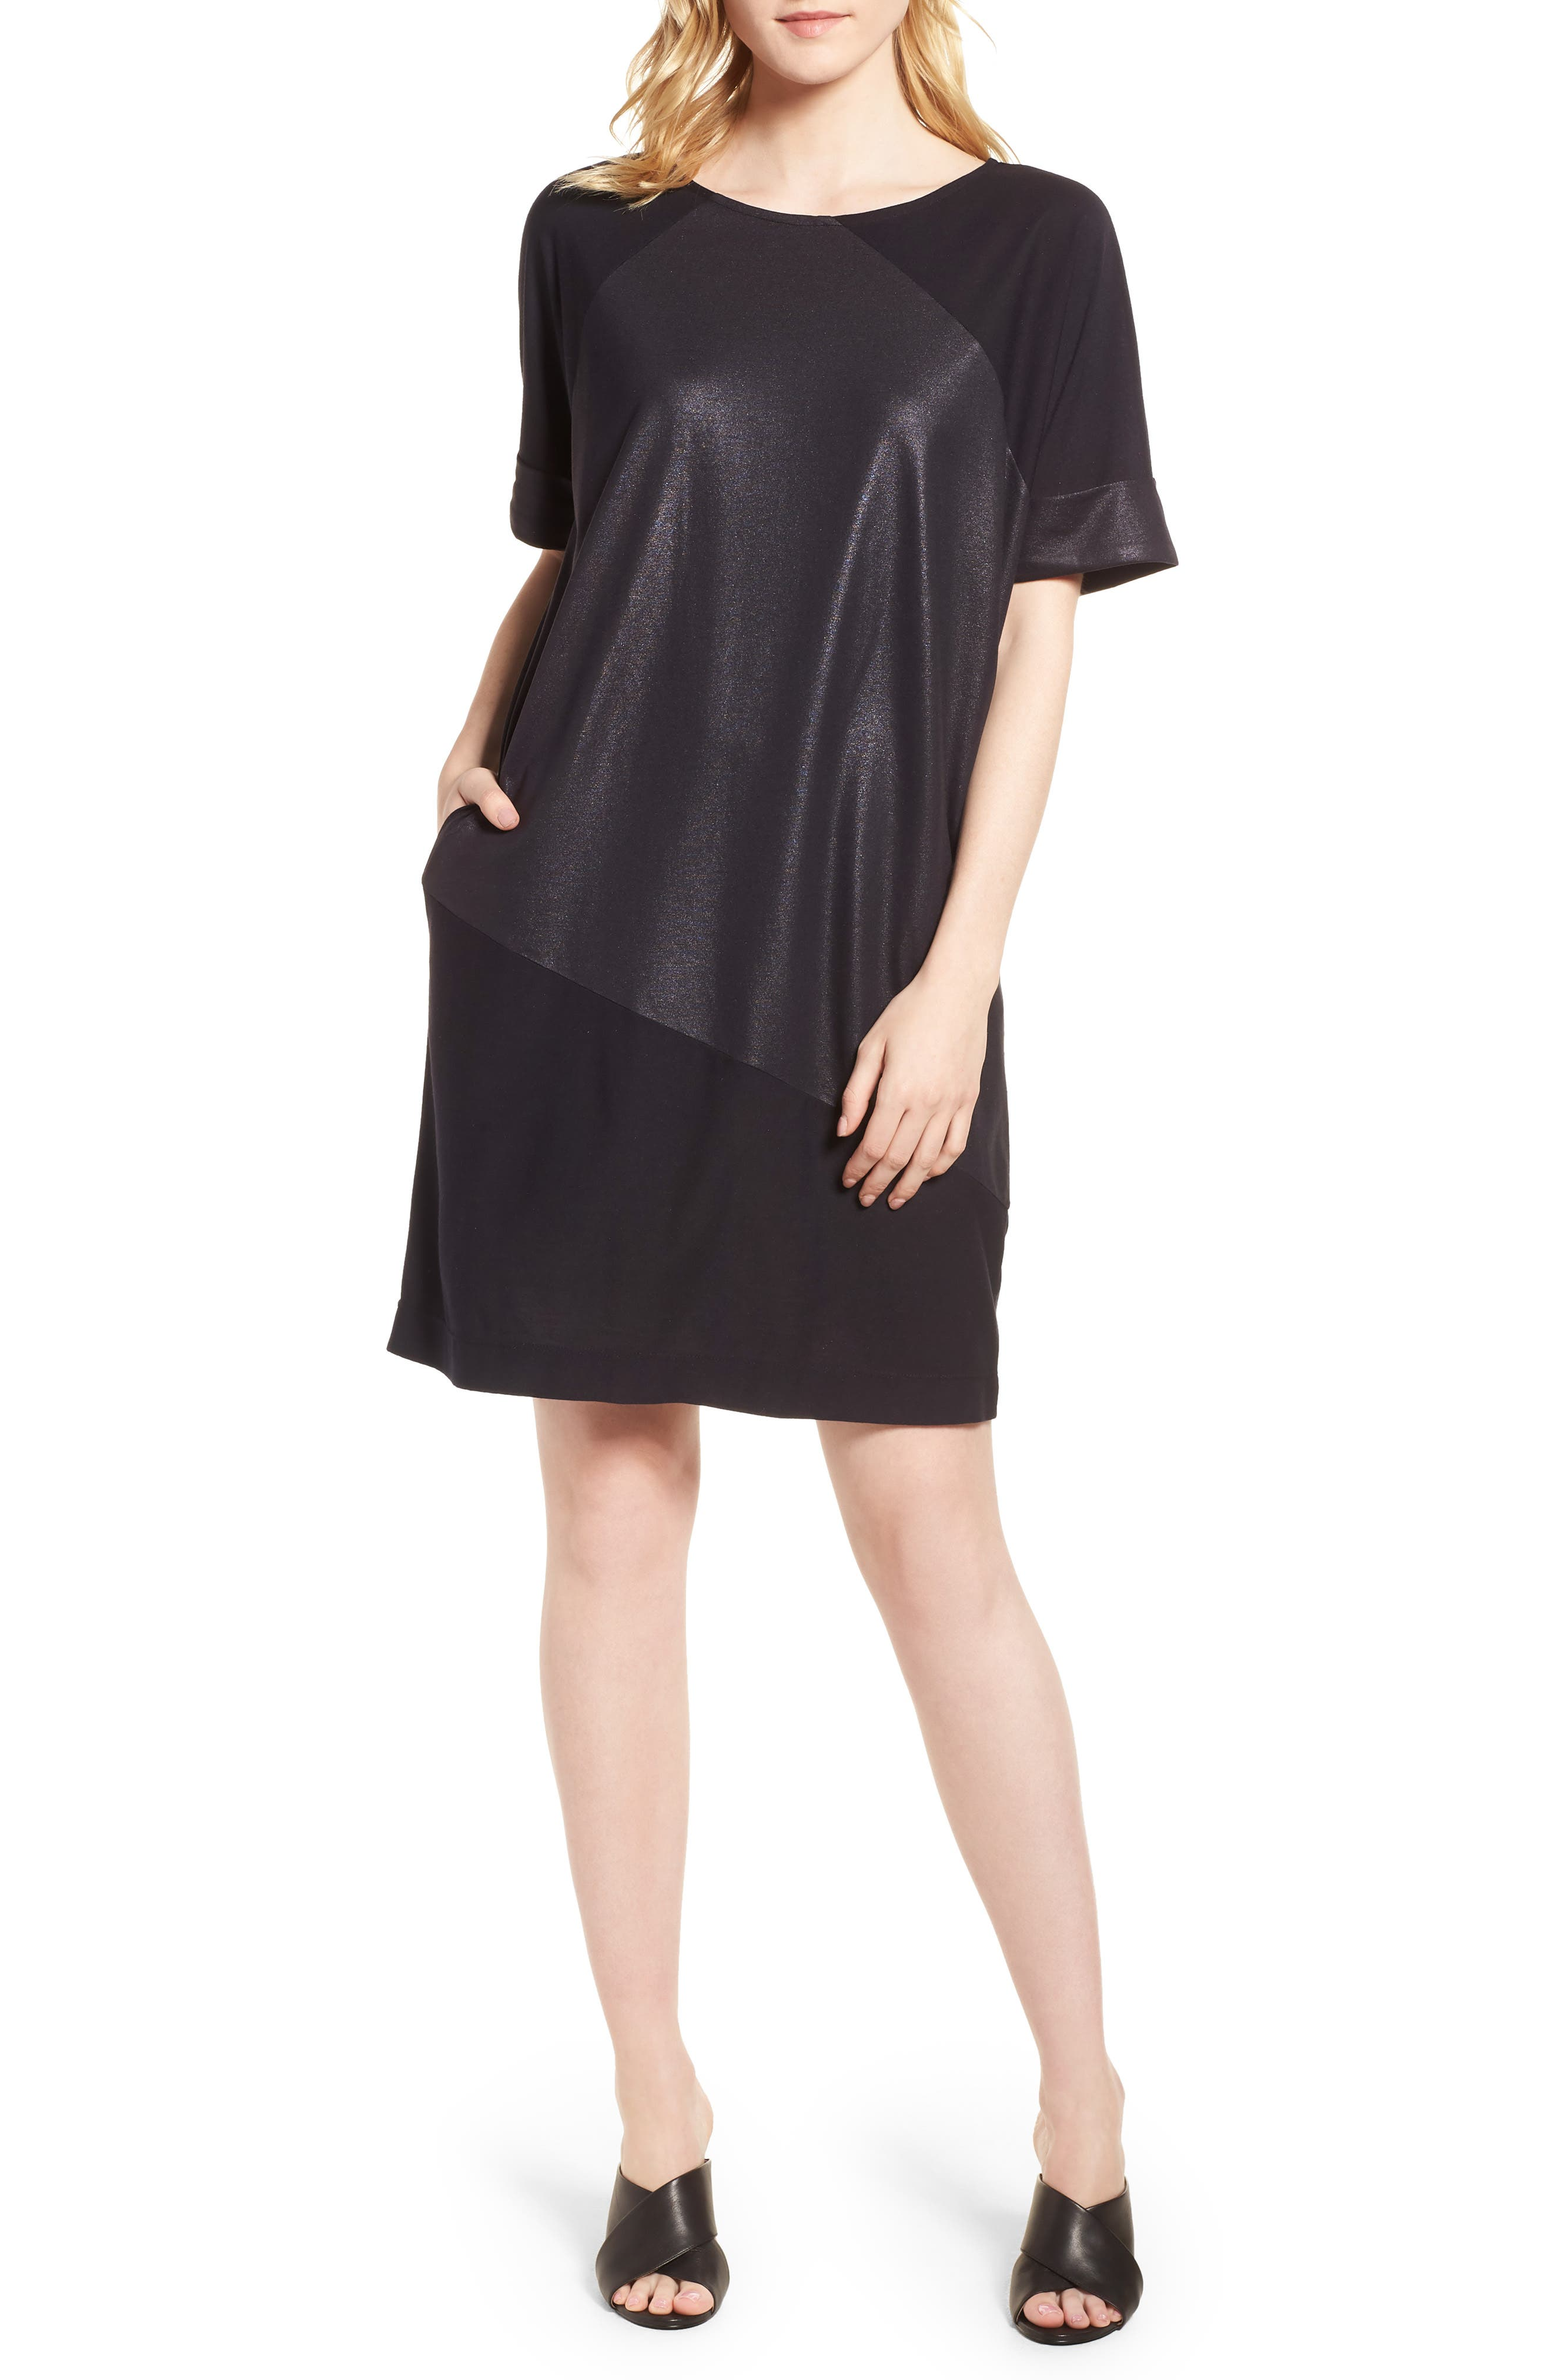 Kenneth Cole New York Glitter Block T-Shirt Dress